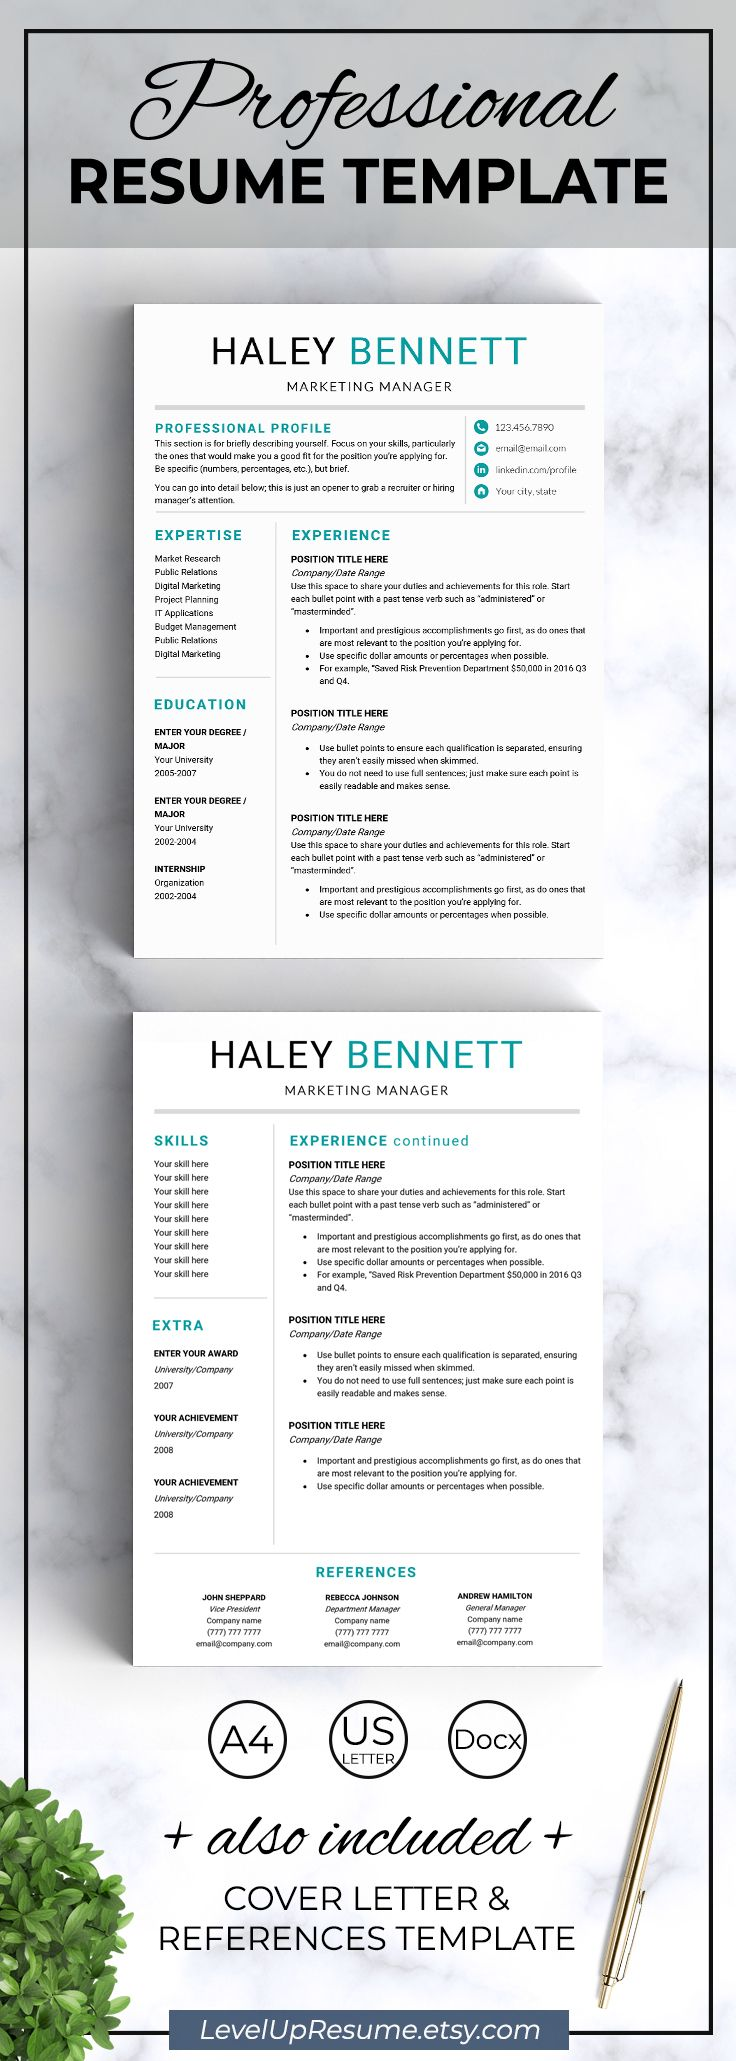 Word Resume Template 2007 Professional Resume Word A4 Resume Us Letter Cv Template For Word .